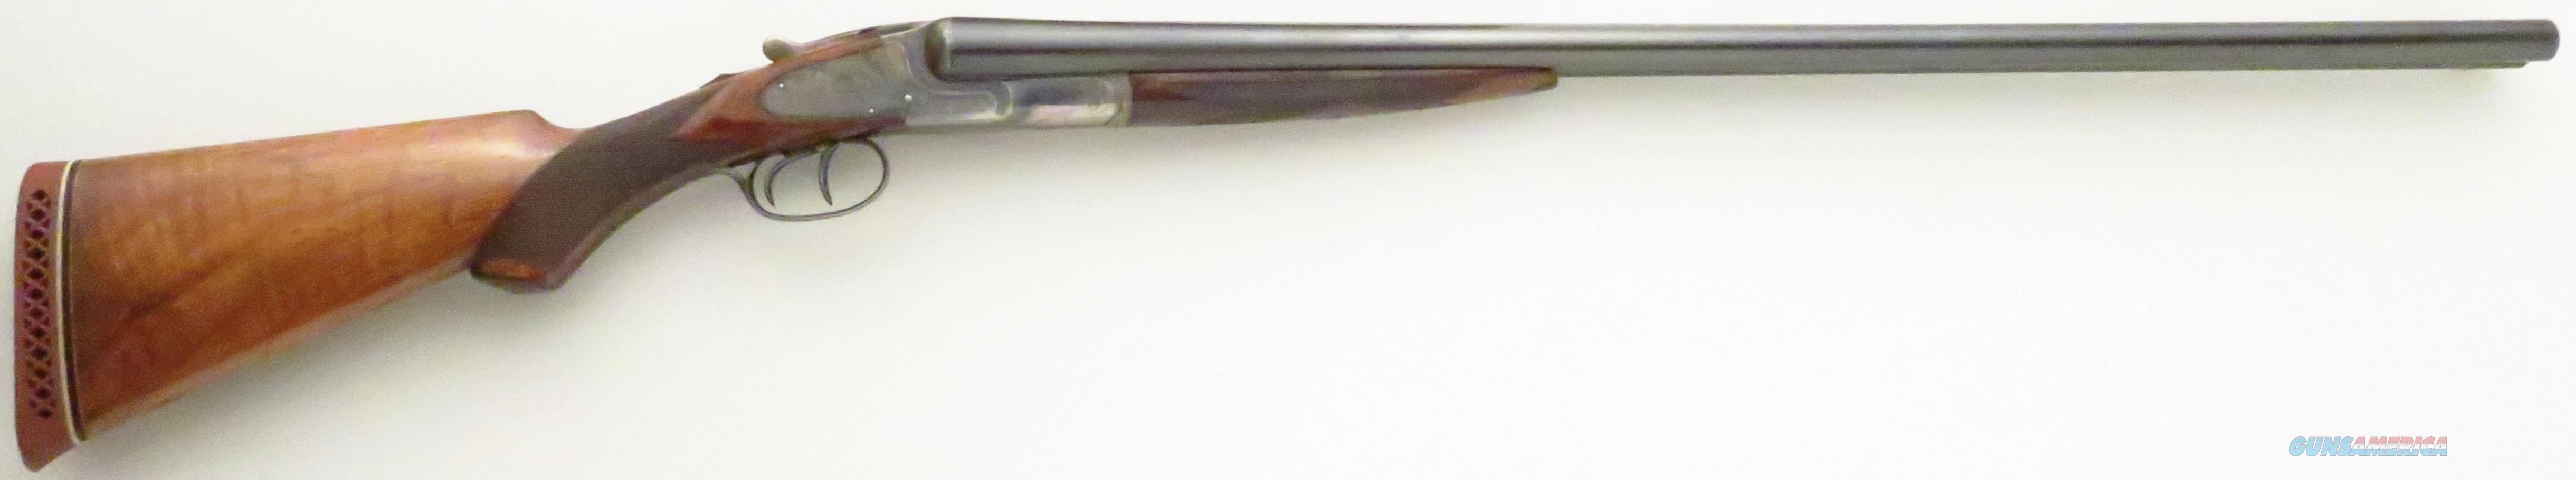 L.C. Smith 2-E 12 gauge, 1907, factory letter, ejectors, fluid Crown Steel barrels, 209269  Guns > Shotguns > L.C. Smith Shotguns